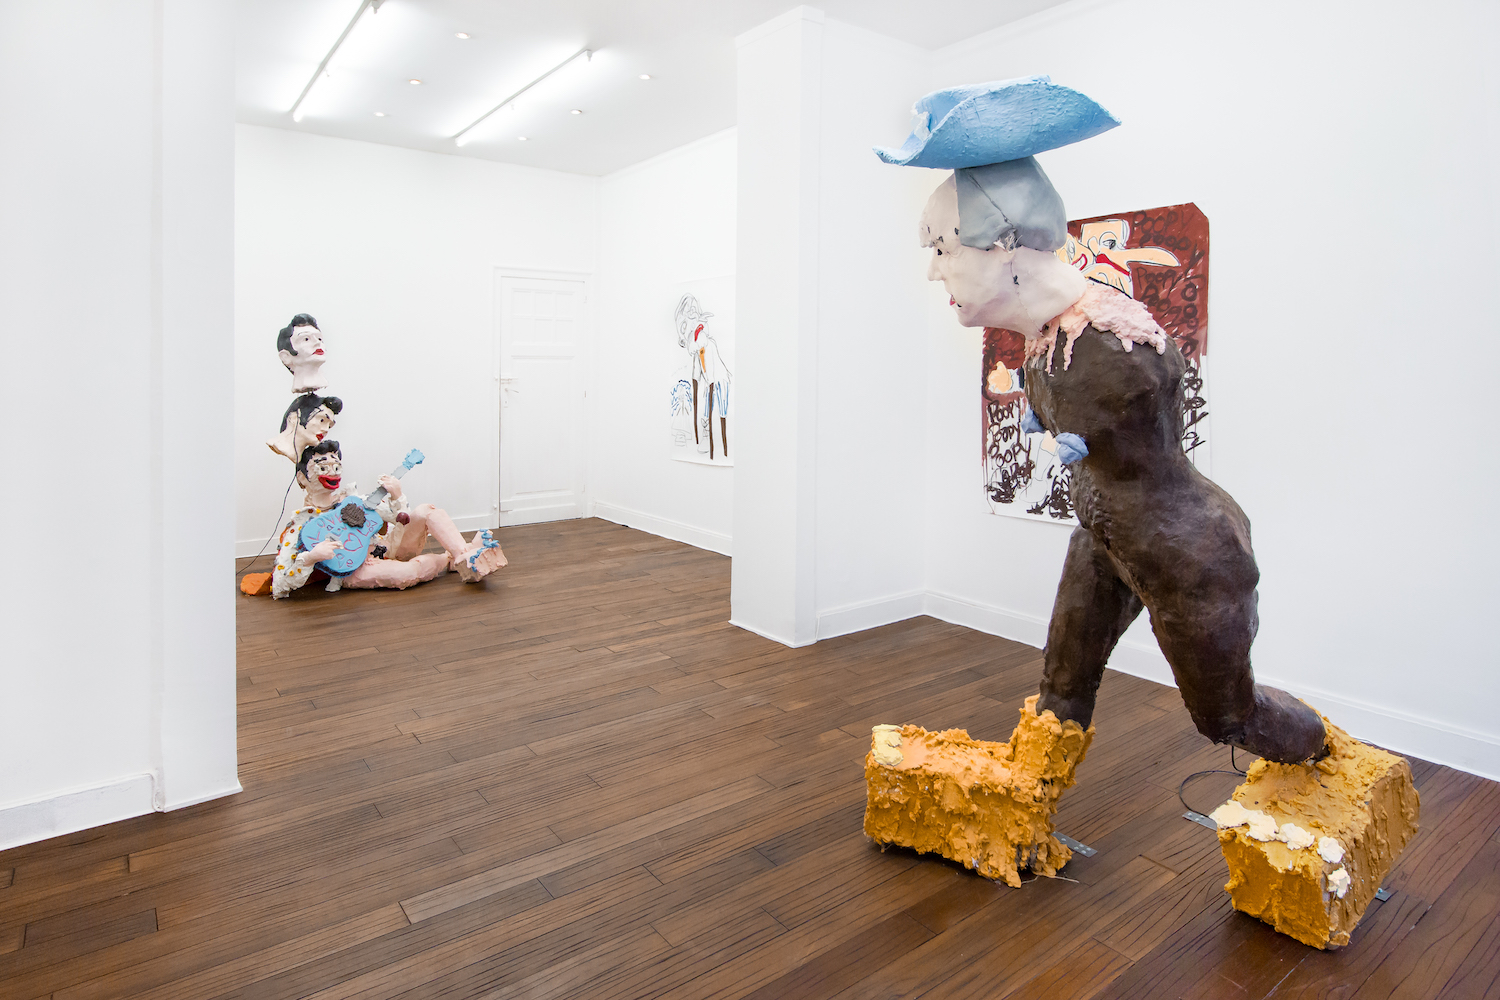 Jamie Fitzpatrick, The Magician and the lover, 2020. Installation view. Deborah Bowman, Brussels, BE.